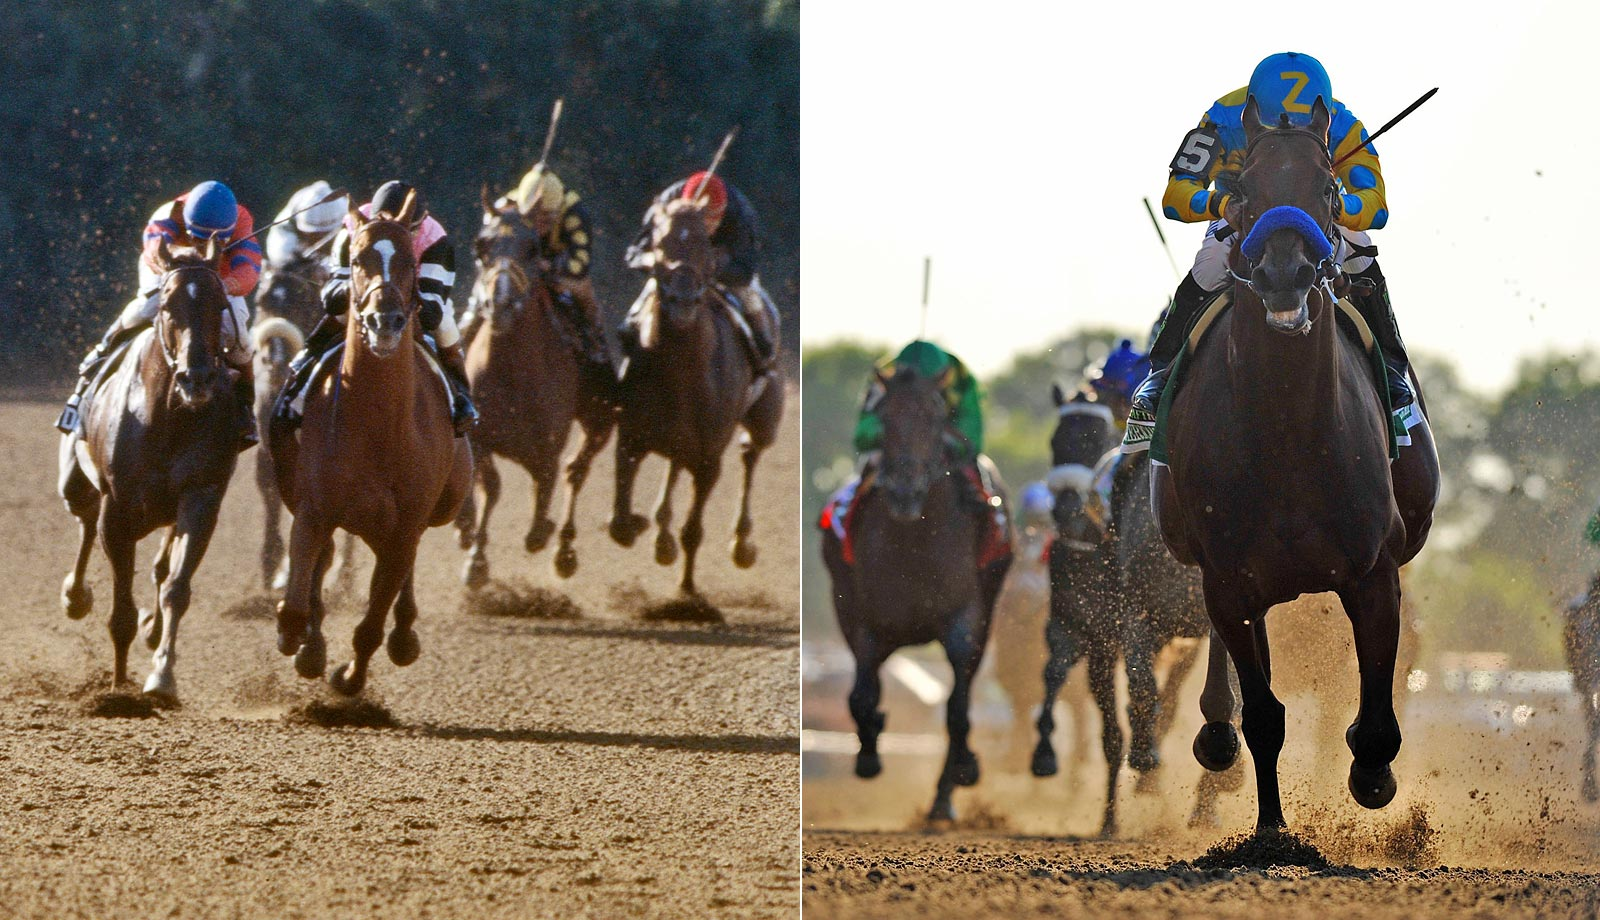 Sports Illustrated photographer Heinz Kluetmeier photographed the Triple Crown winners both in 1978 and 2015.  Here's a look, then and now.